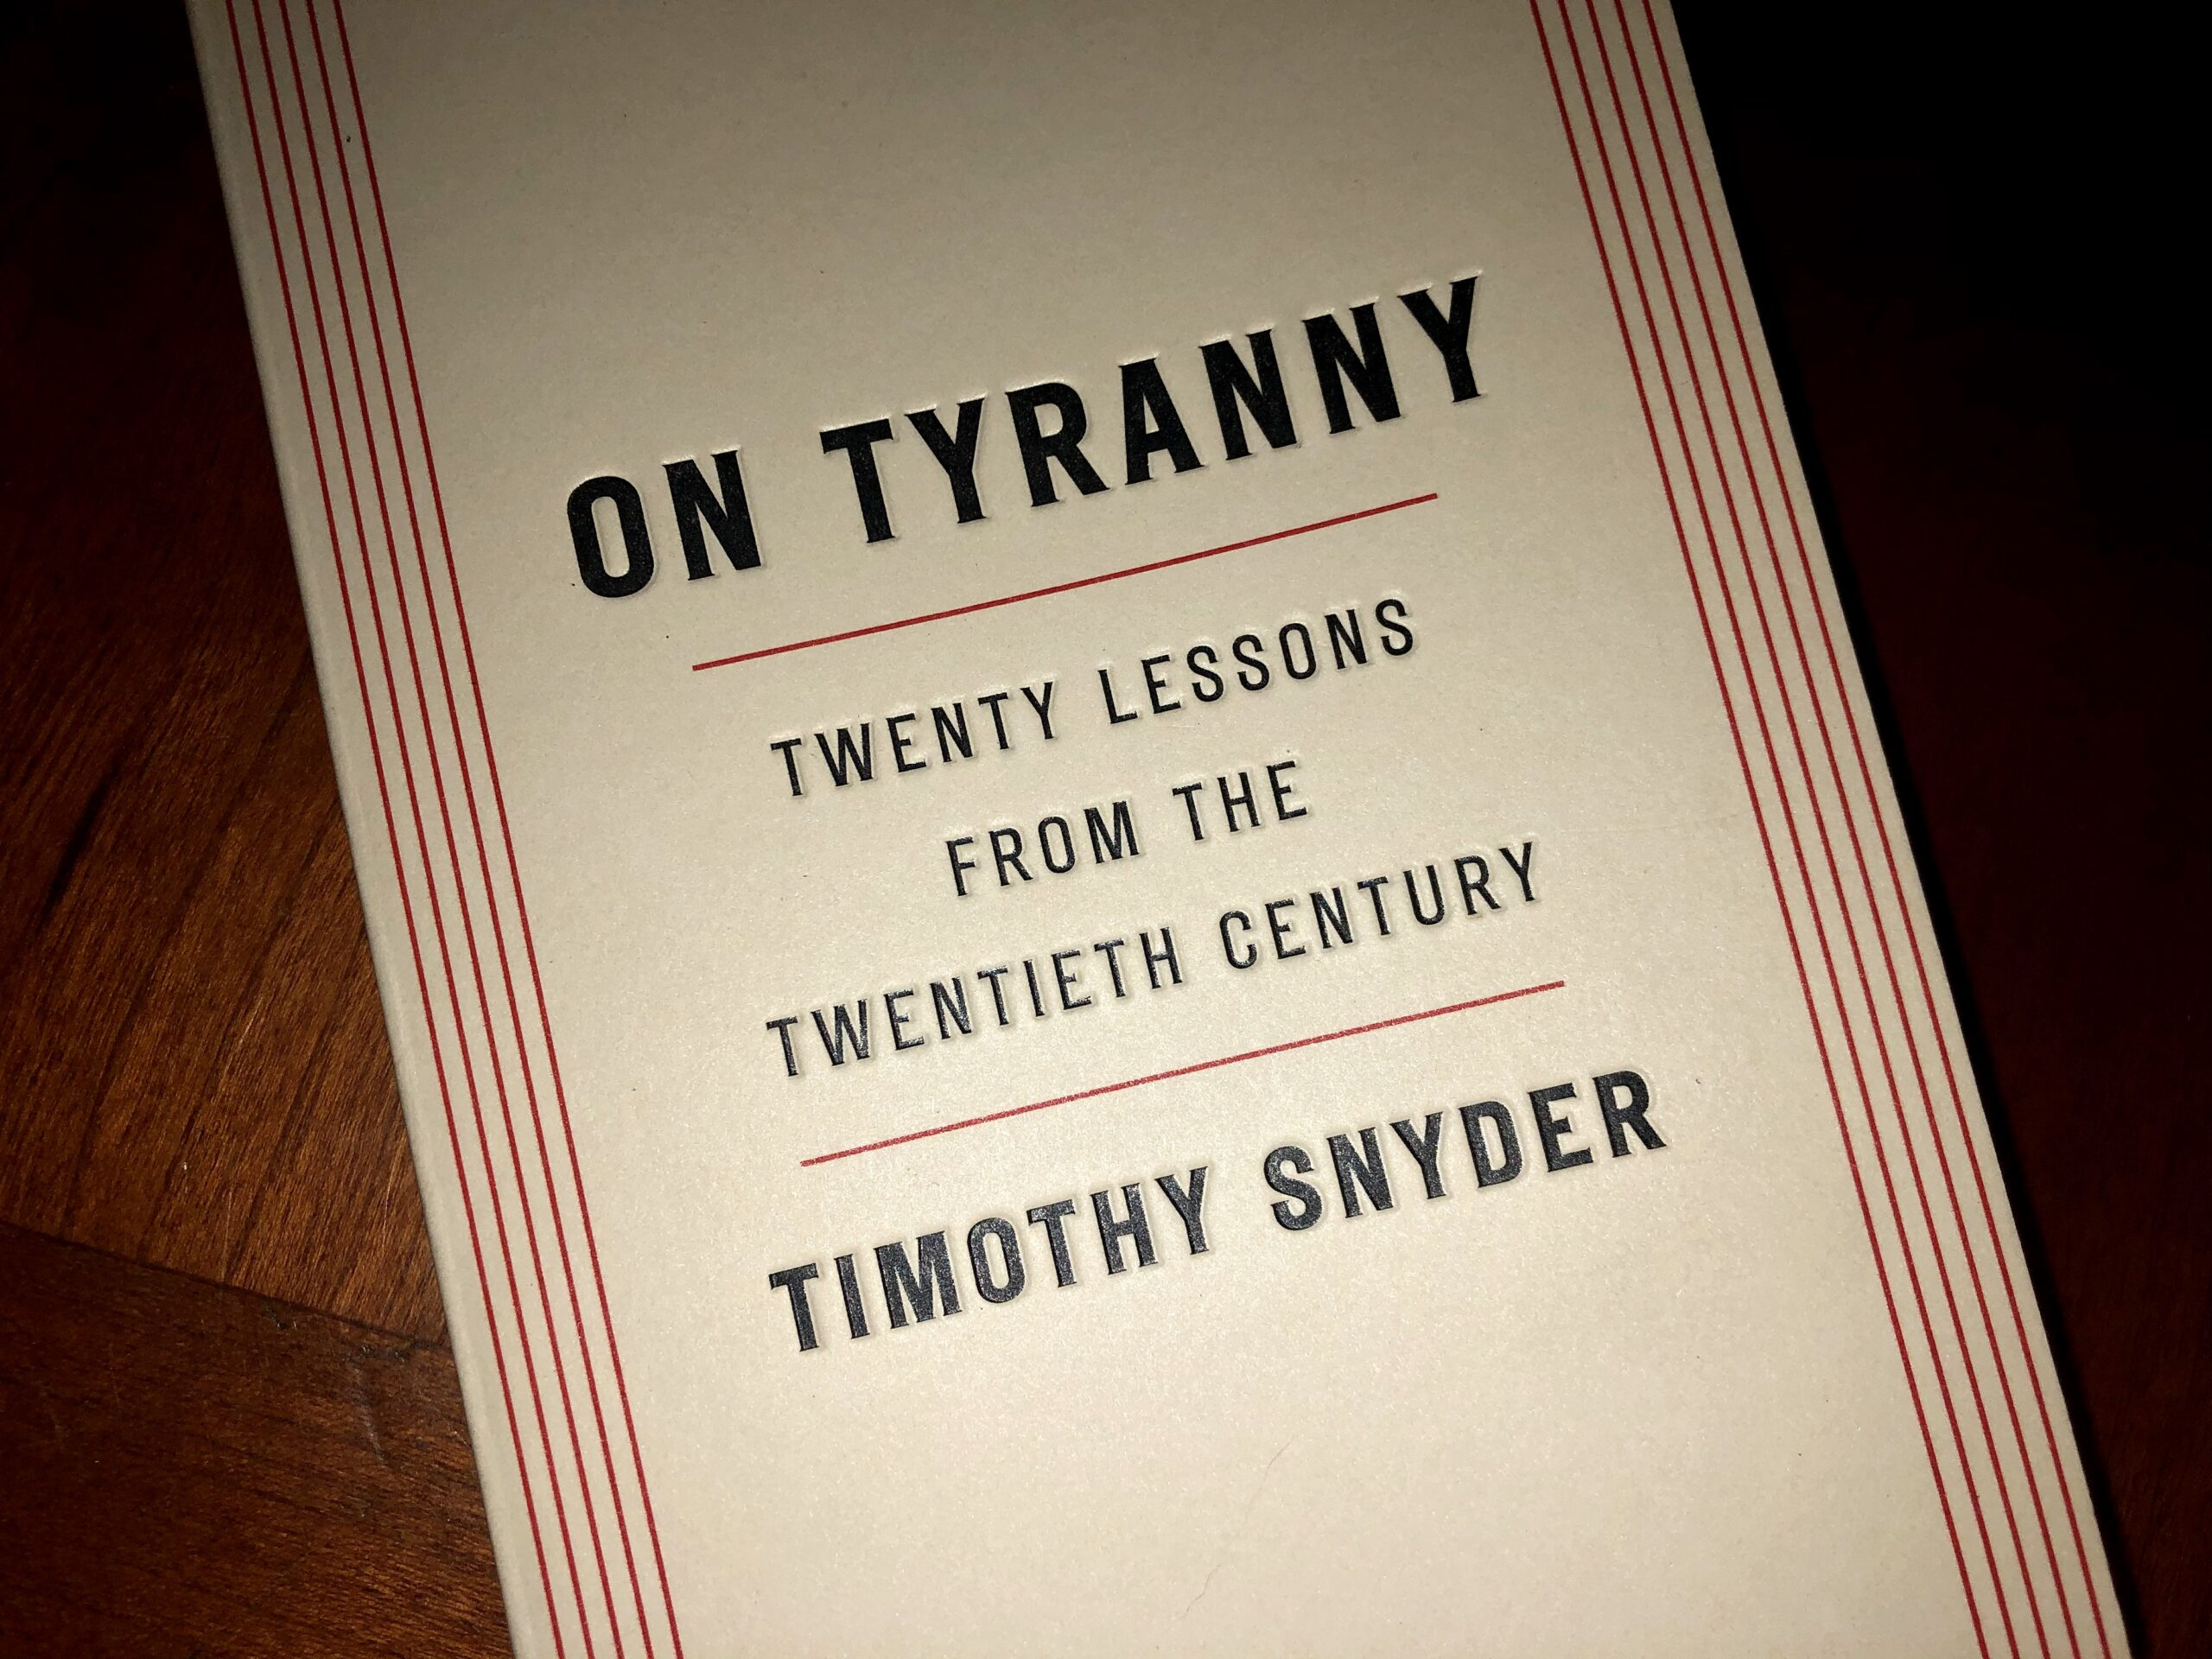 On Tyranny: Twenty Lesson from The Twentieth Century by Timothy Snyder